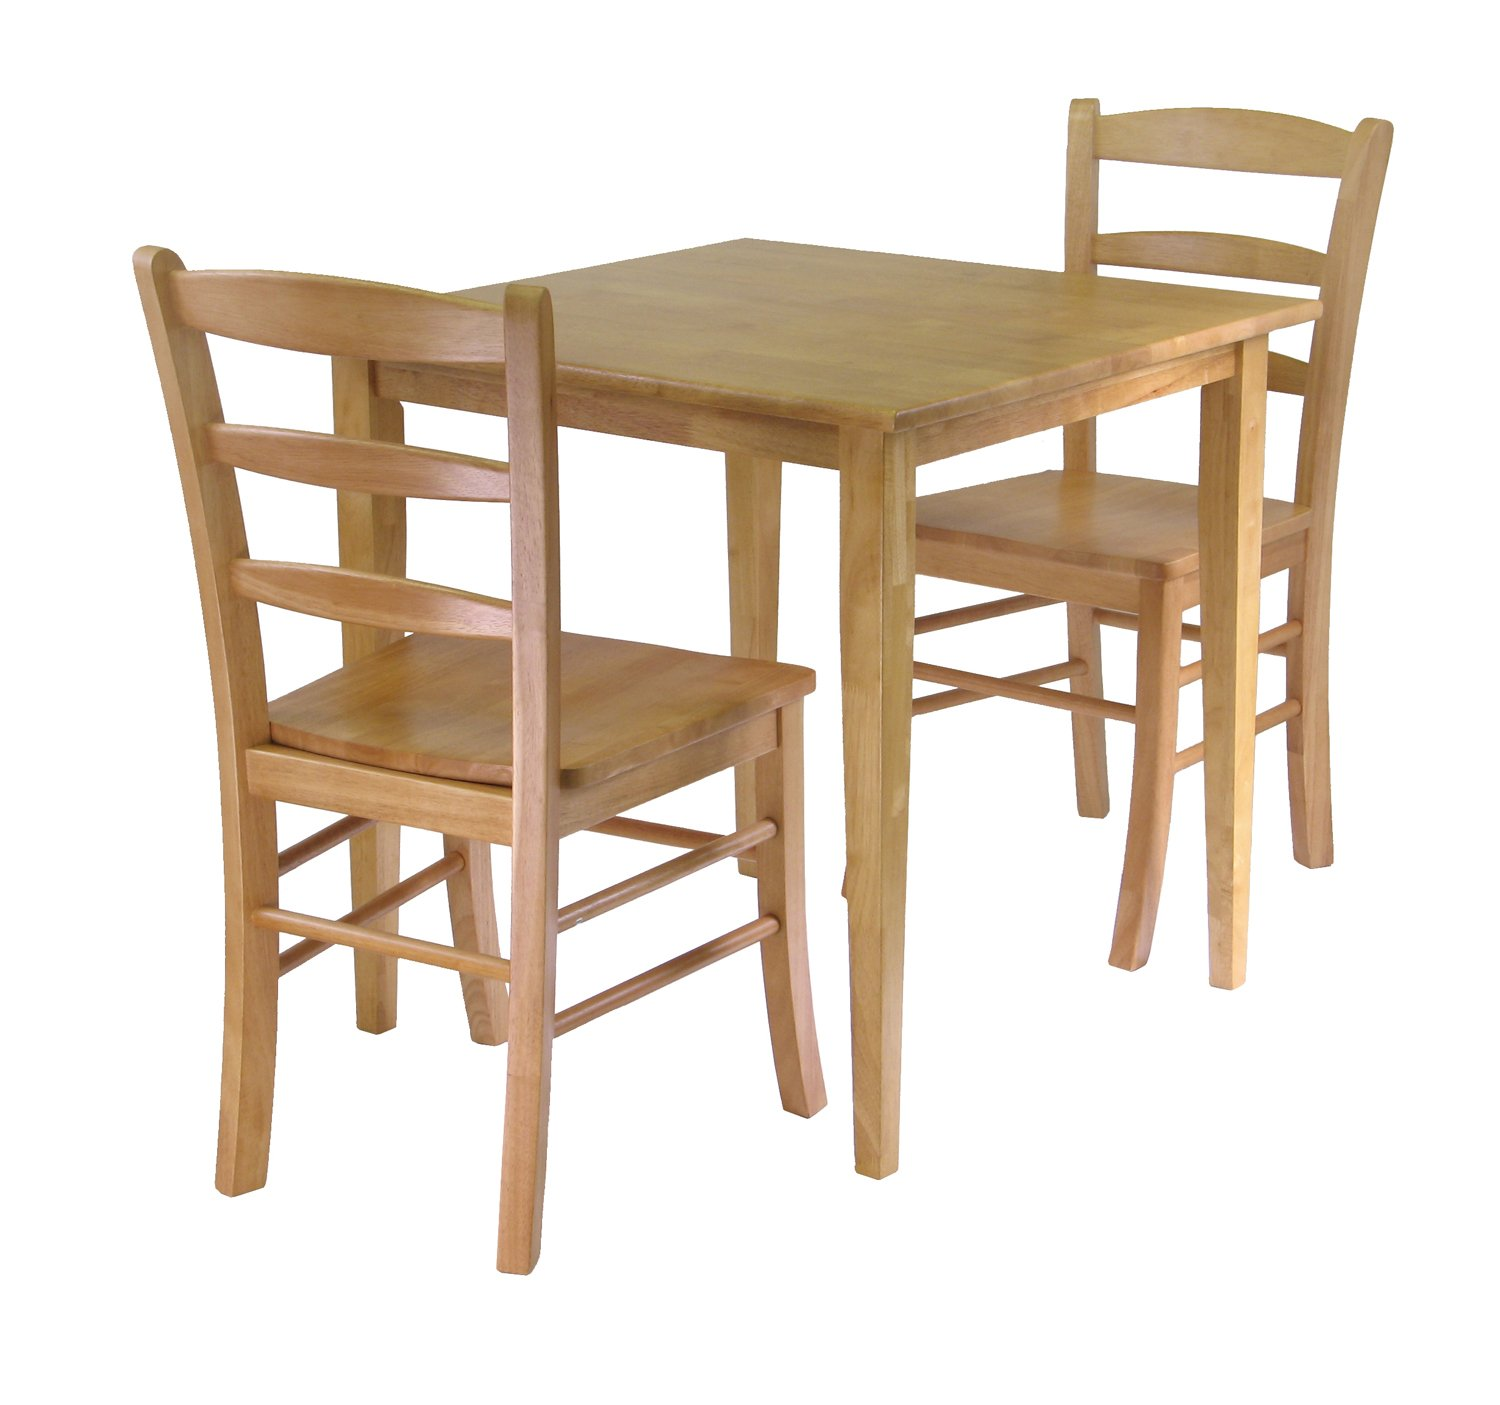 piece wood dining set 29 5 x 29 5 x 29 1 inches check price